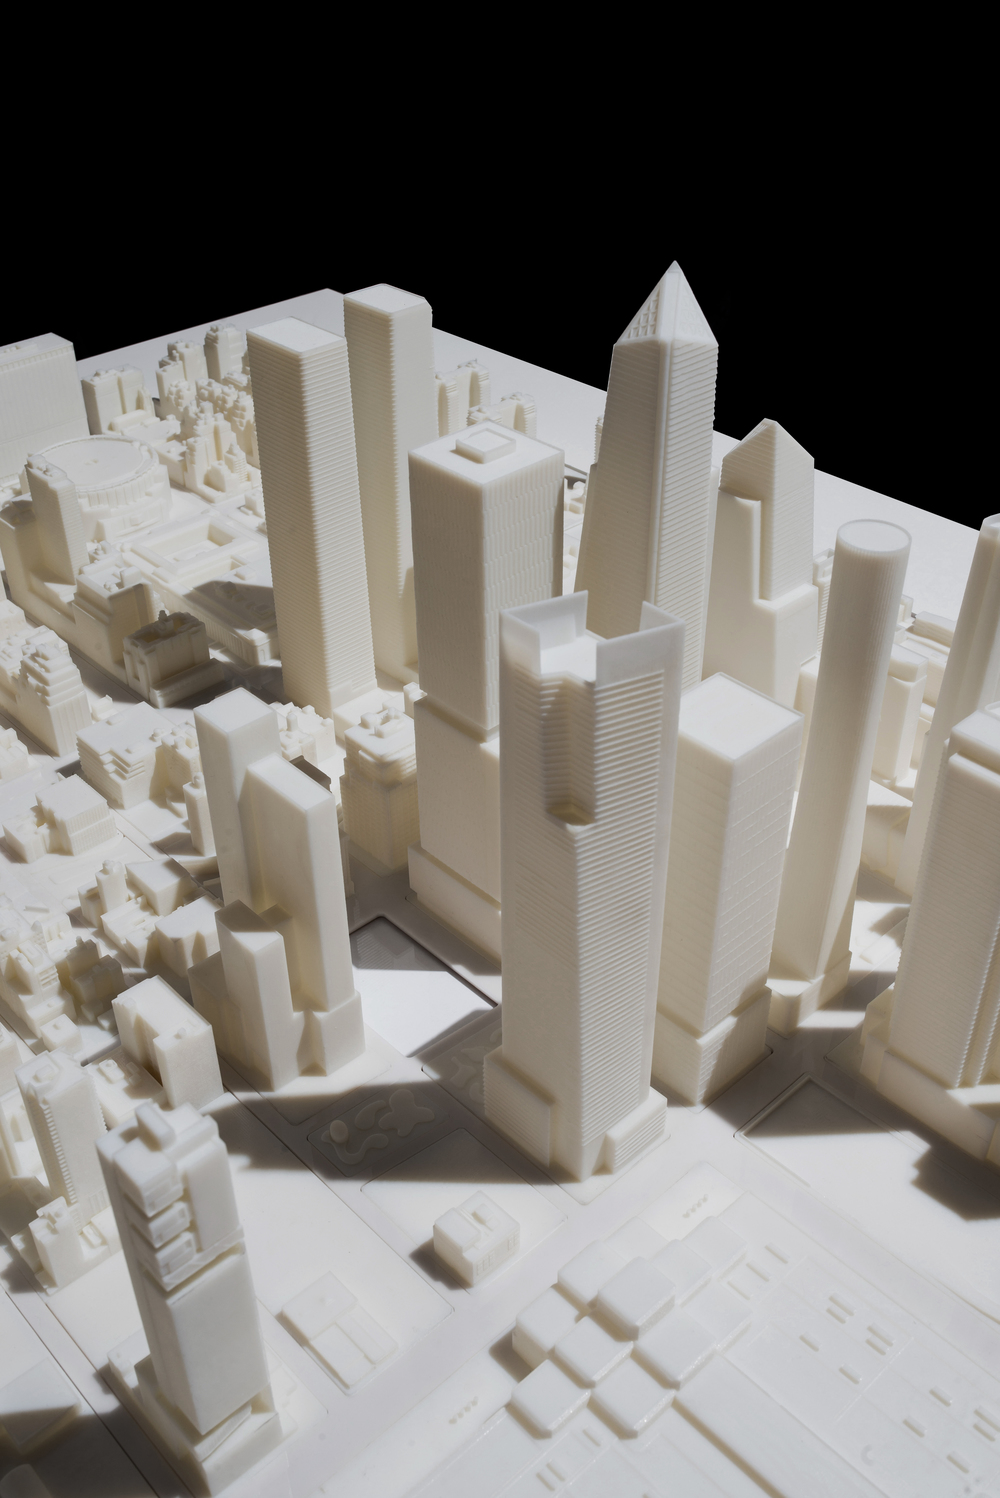 3D Print of Hudson Yards in Manhattan (1:1250, Verowhite)